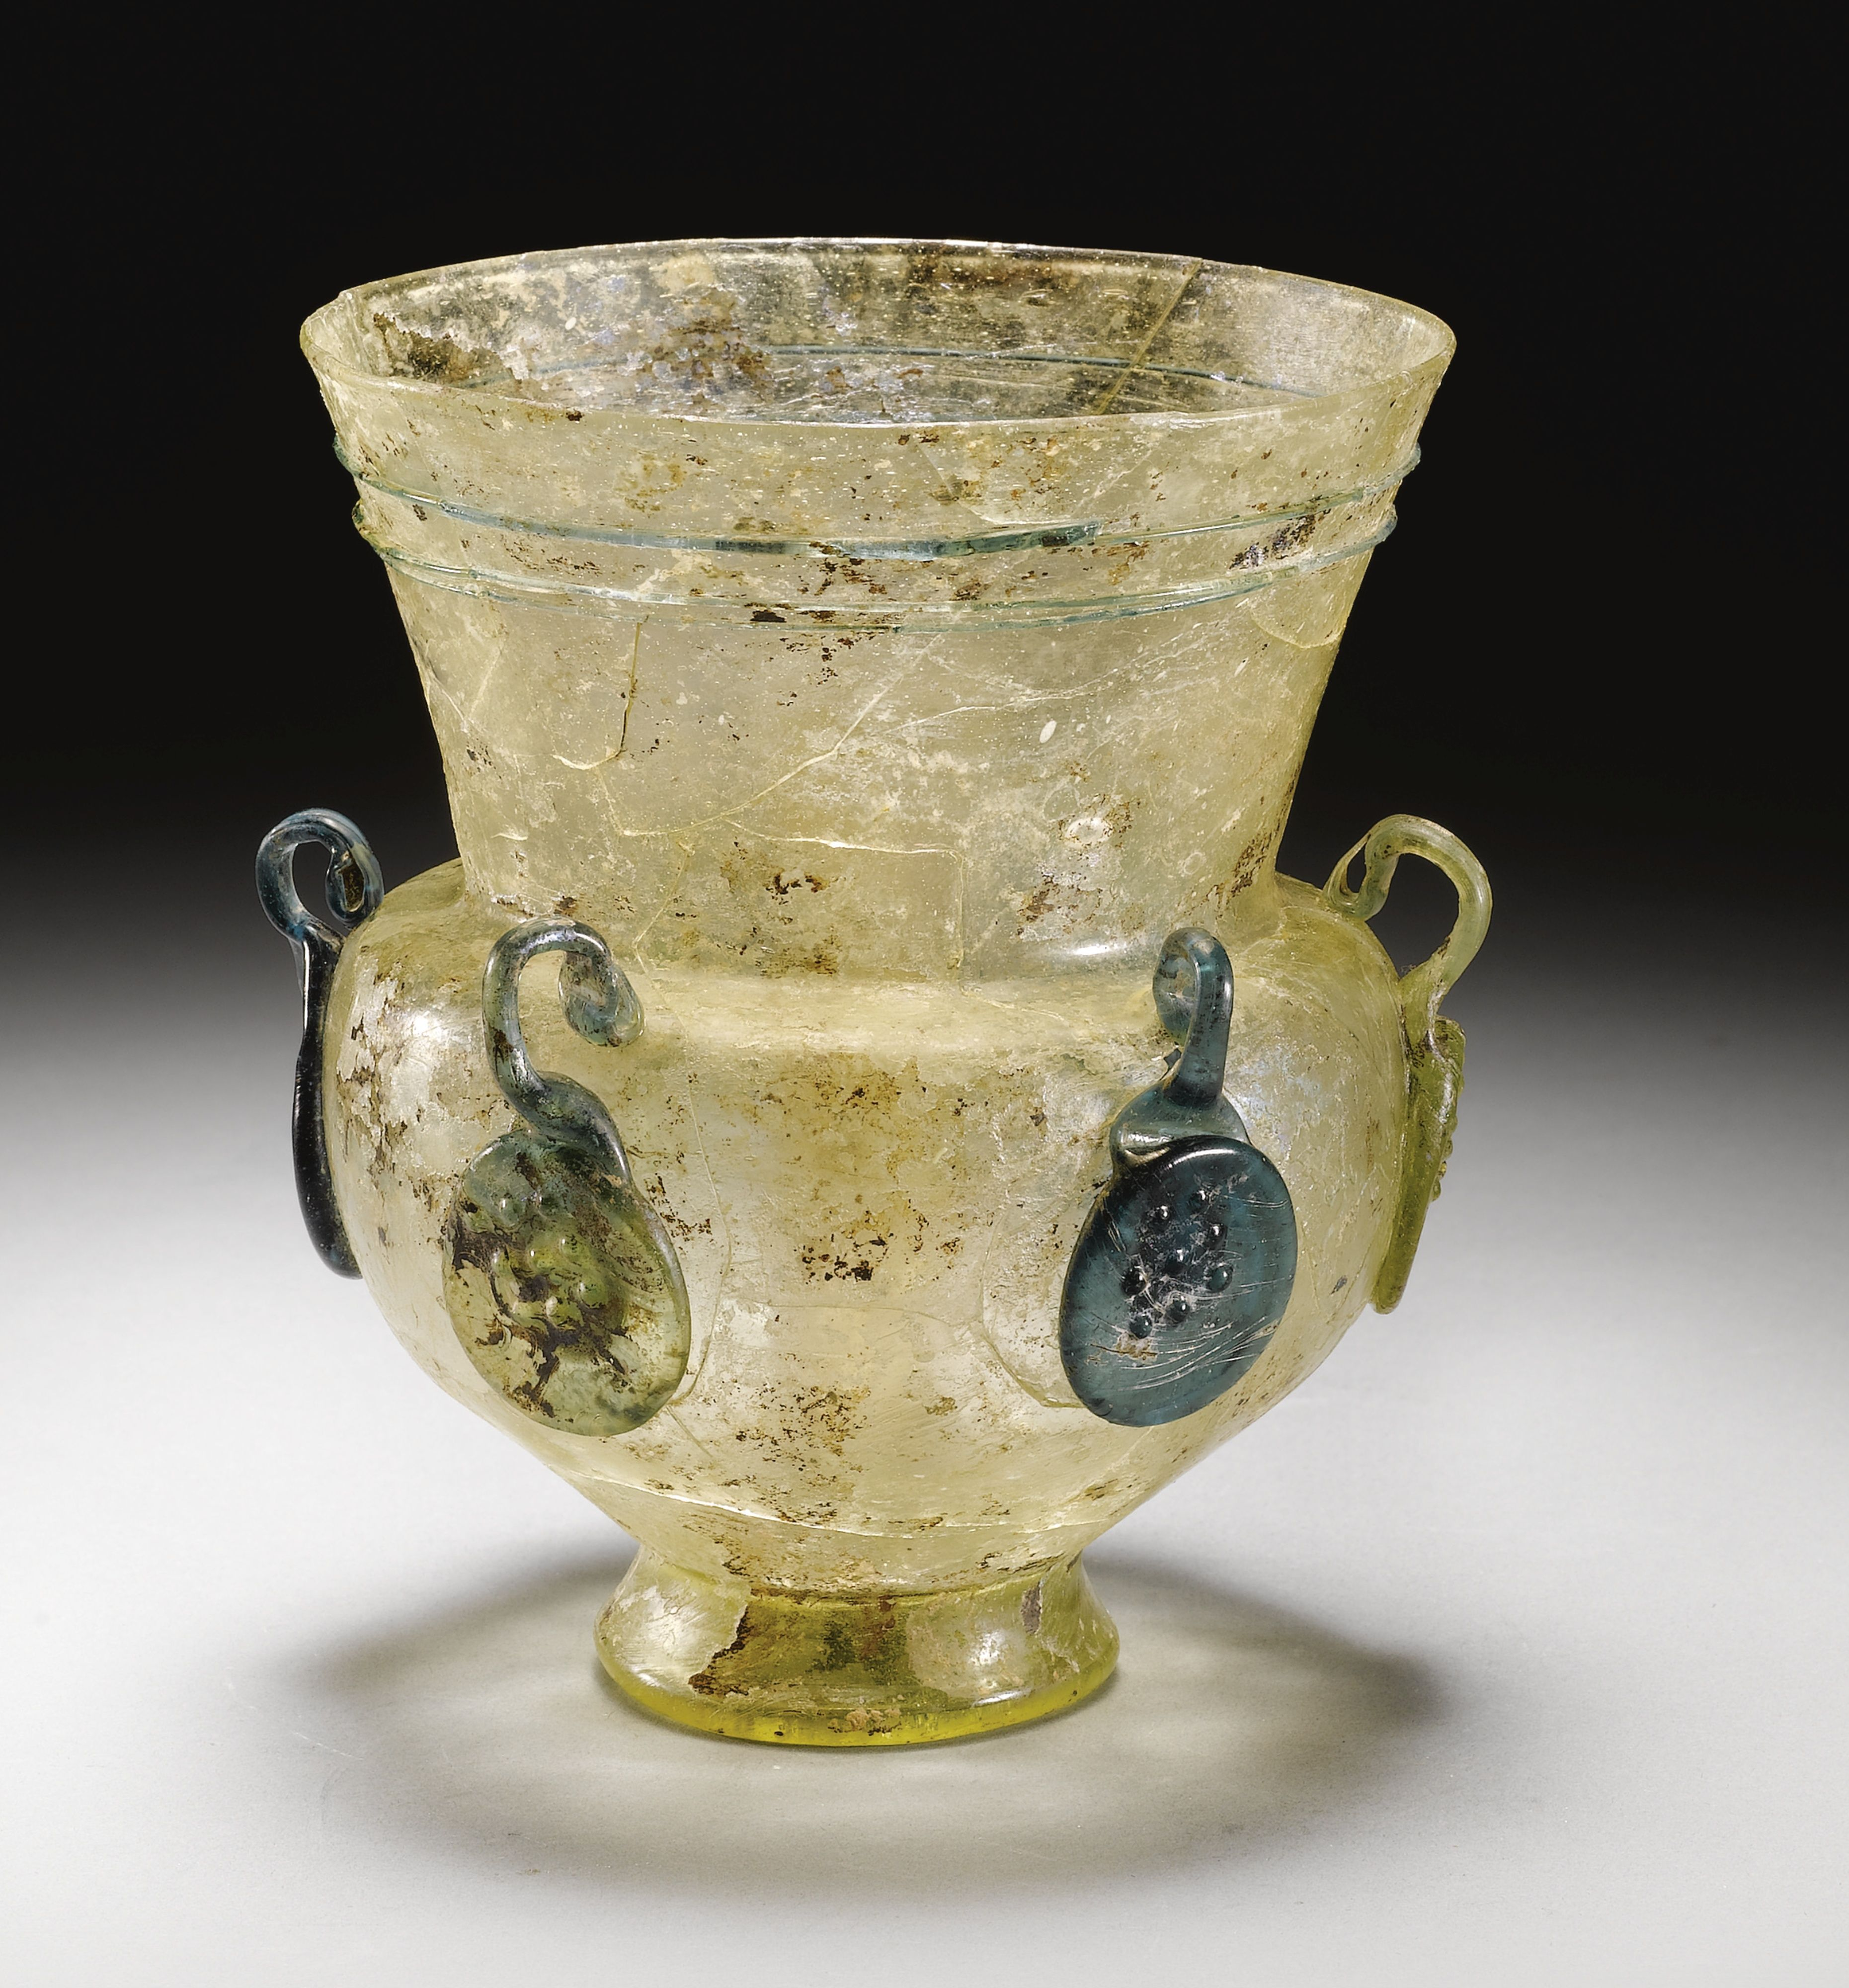 A Rare Early Glass Mosque Lamp Syria 12th Century Lot Ancient Lamp Antique Glass Roman Glass